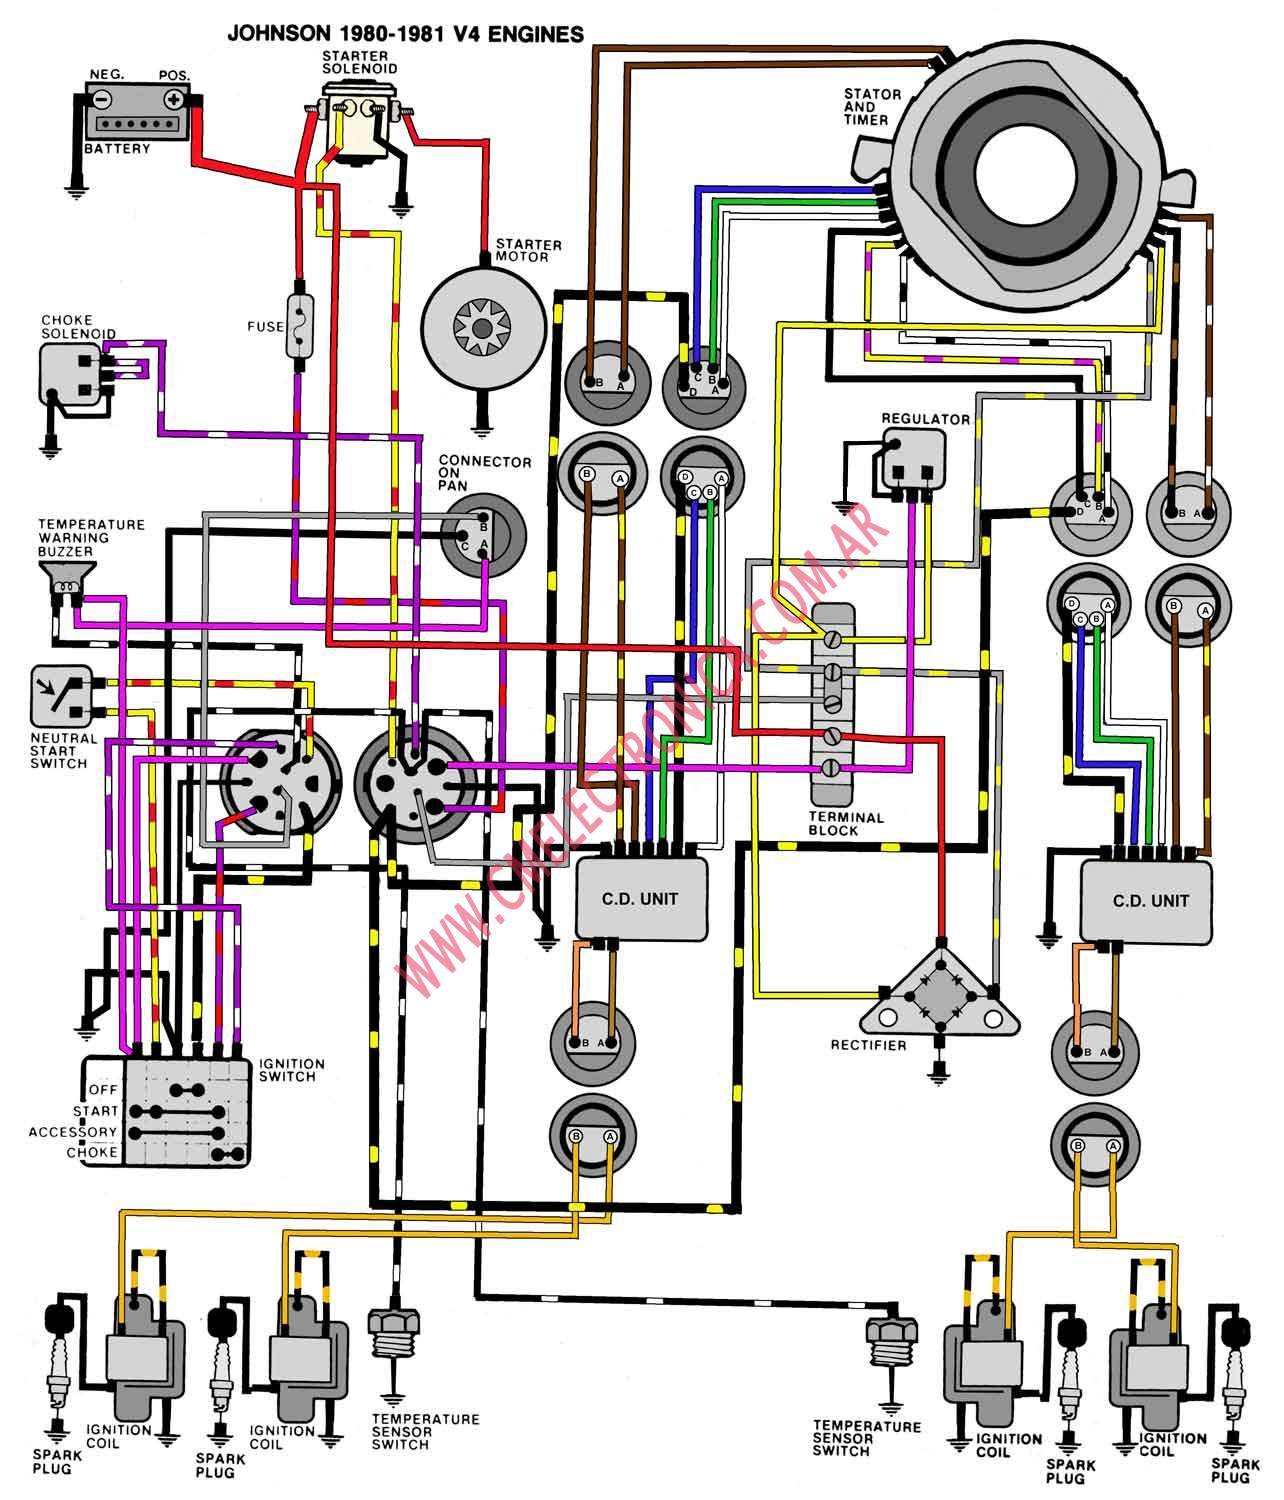 hight resolution of  evinrude johnson 80 81 v4 mercury outboard wiring diagrams mastertech marin readingrat net yamaha outboard control wiring diagram at